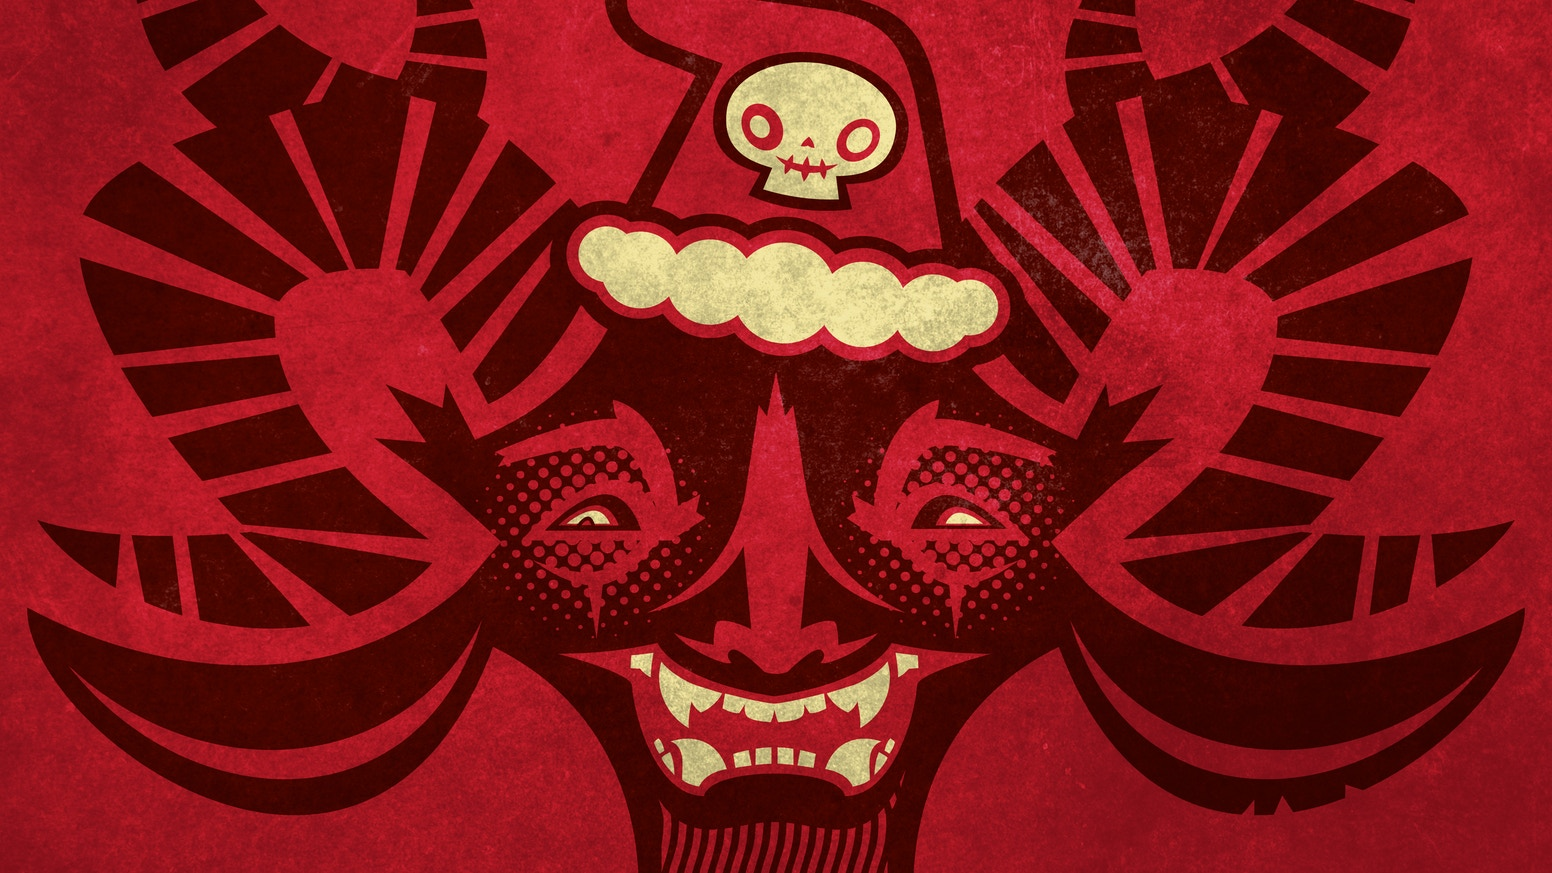 Our 5th collection of goods to celebrate our favorite Holiday Monster... the KRAMPUS!